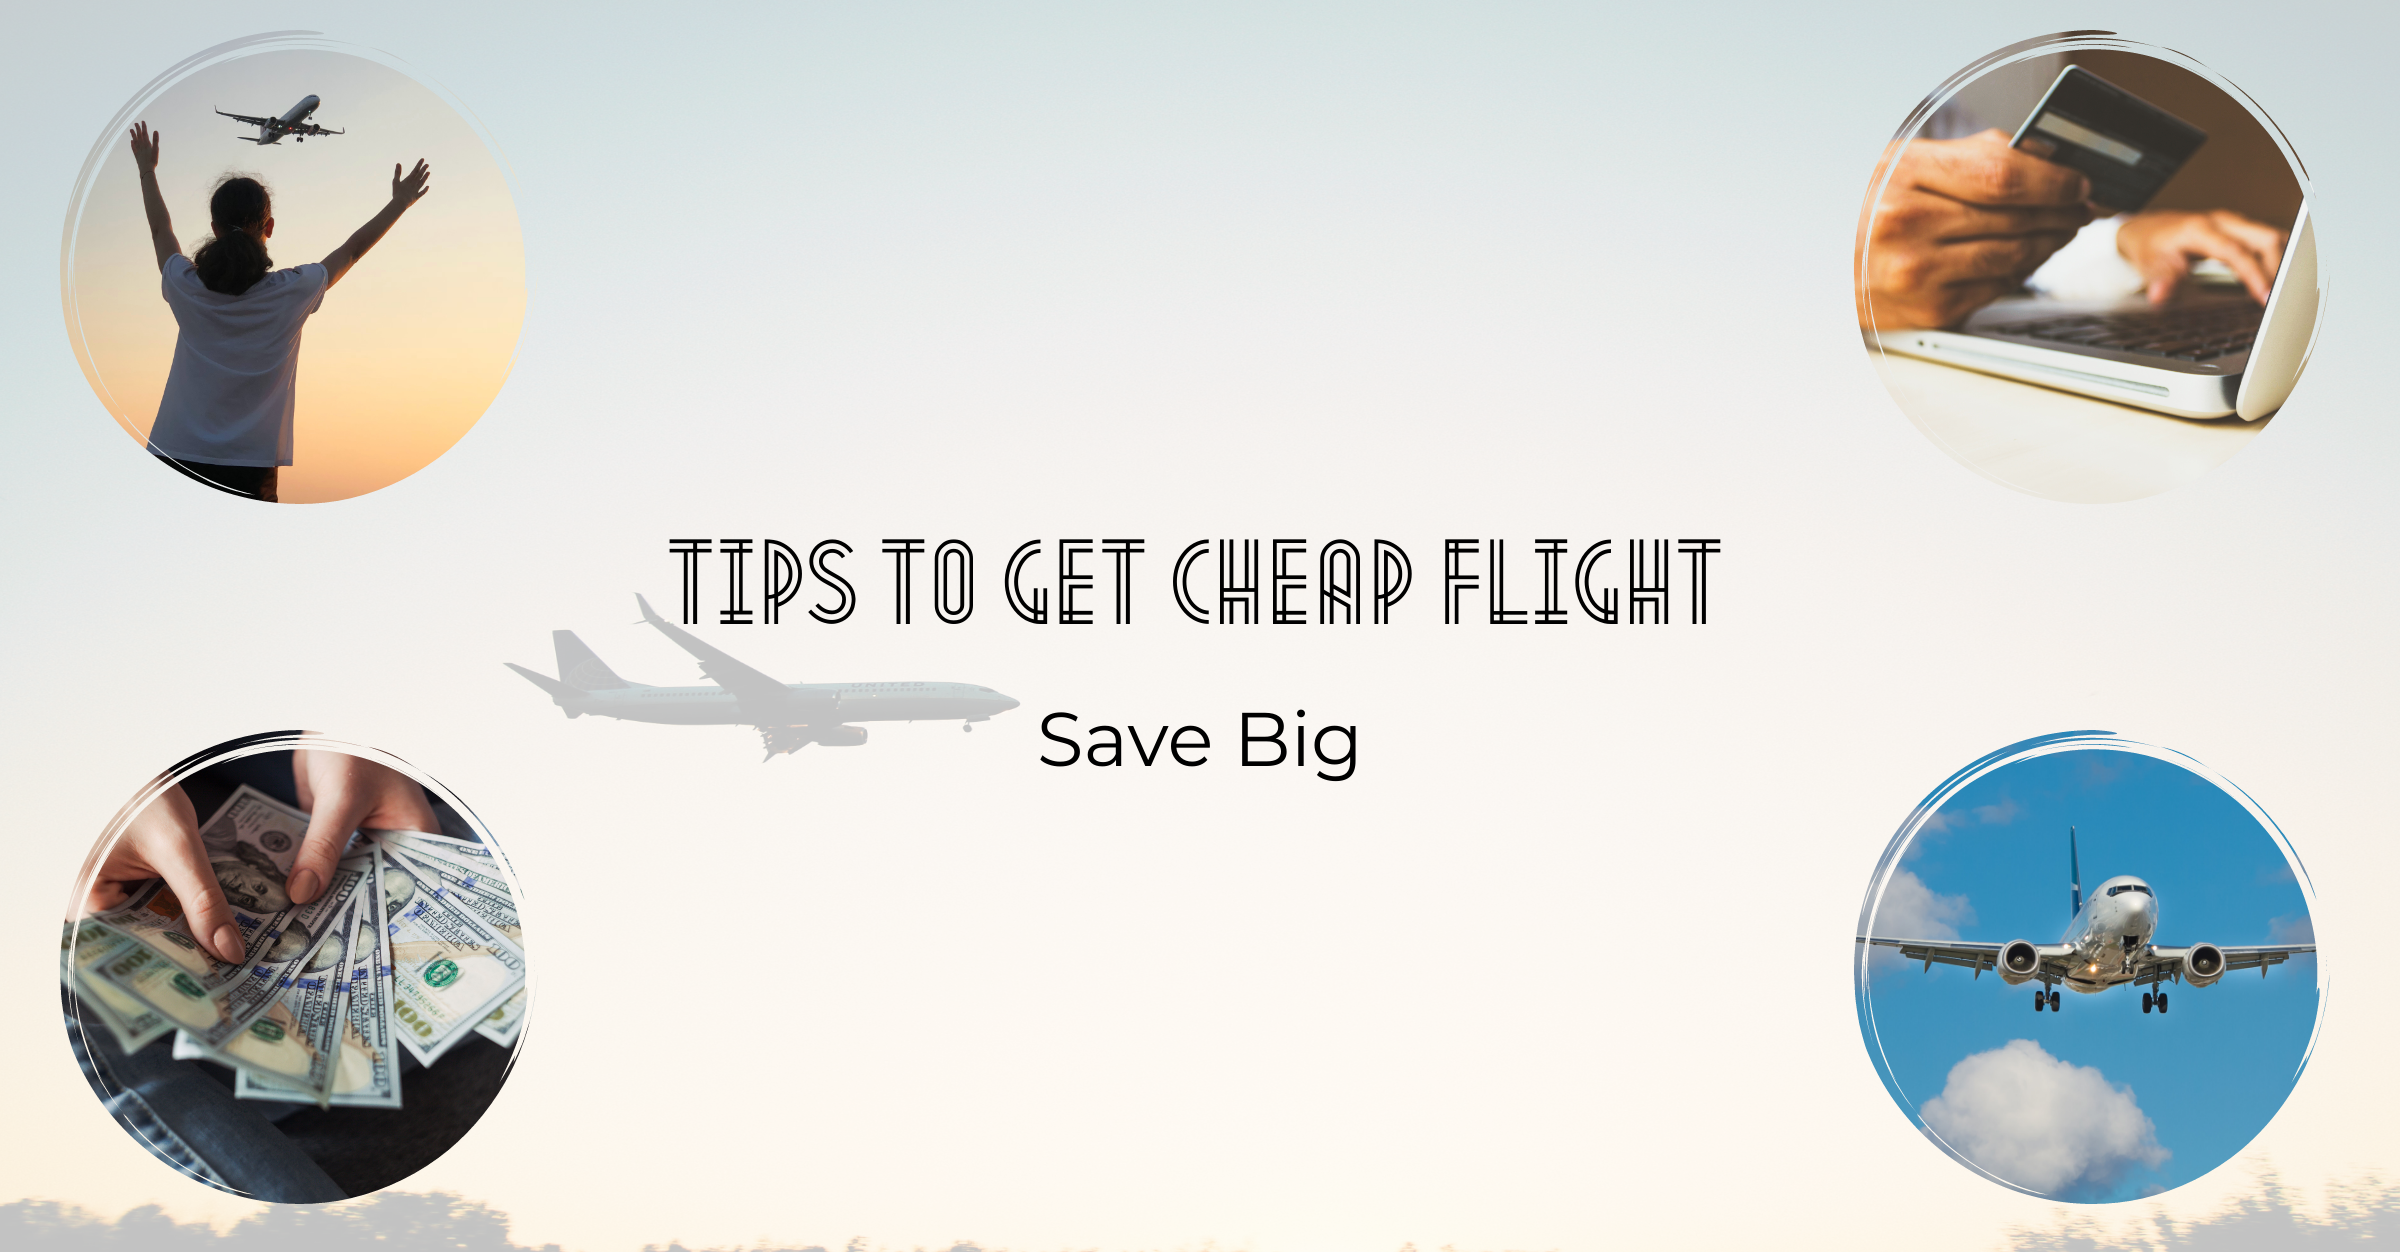 9 Tips to Get Cheap Flight: Save Big